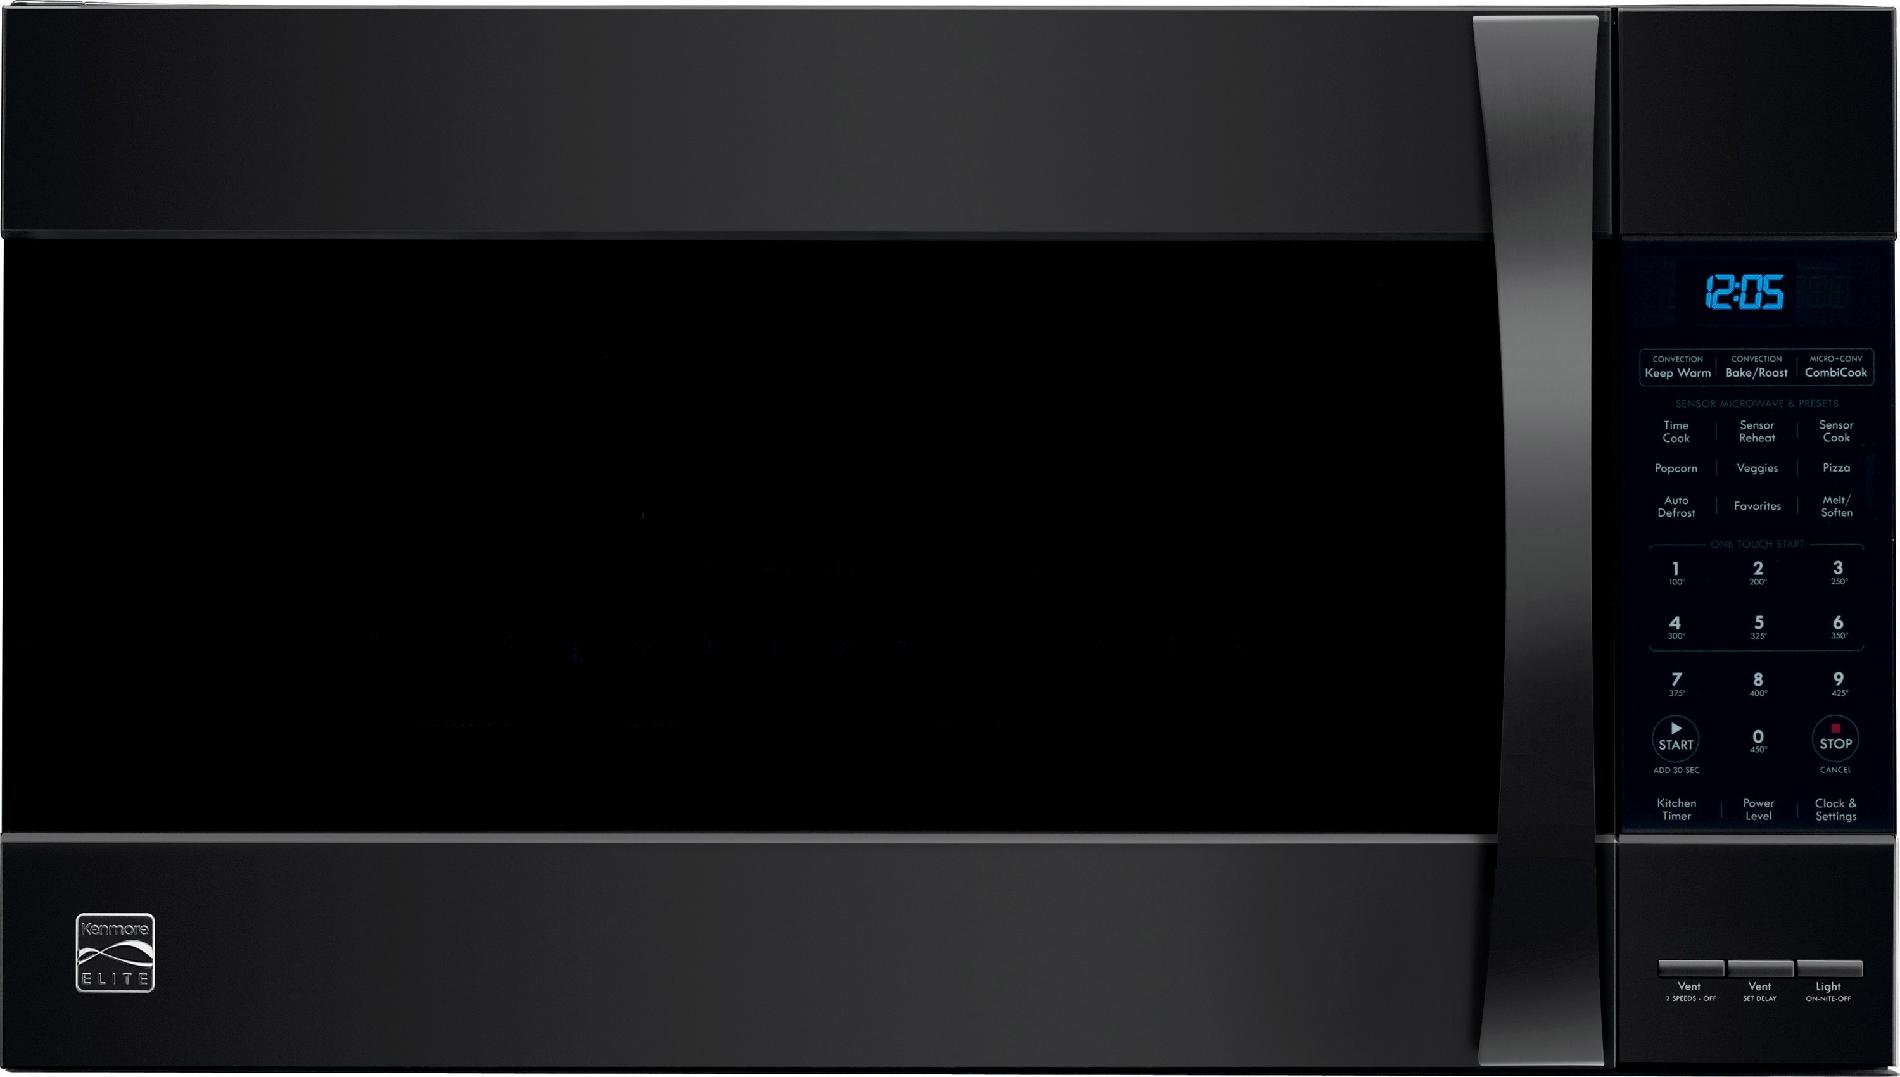 Kenmore Elite 80379 1.8 cu. ft. Over-the-Range Convection Microwave - Black